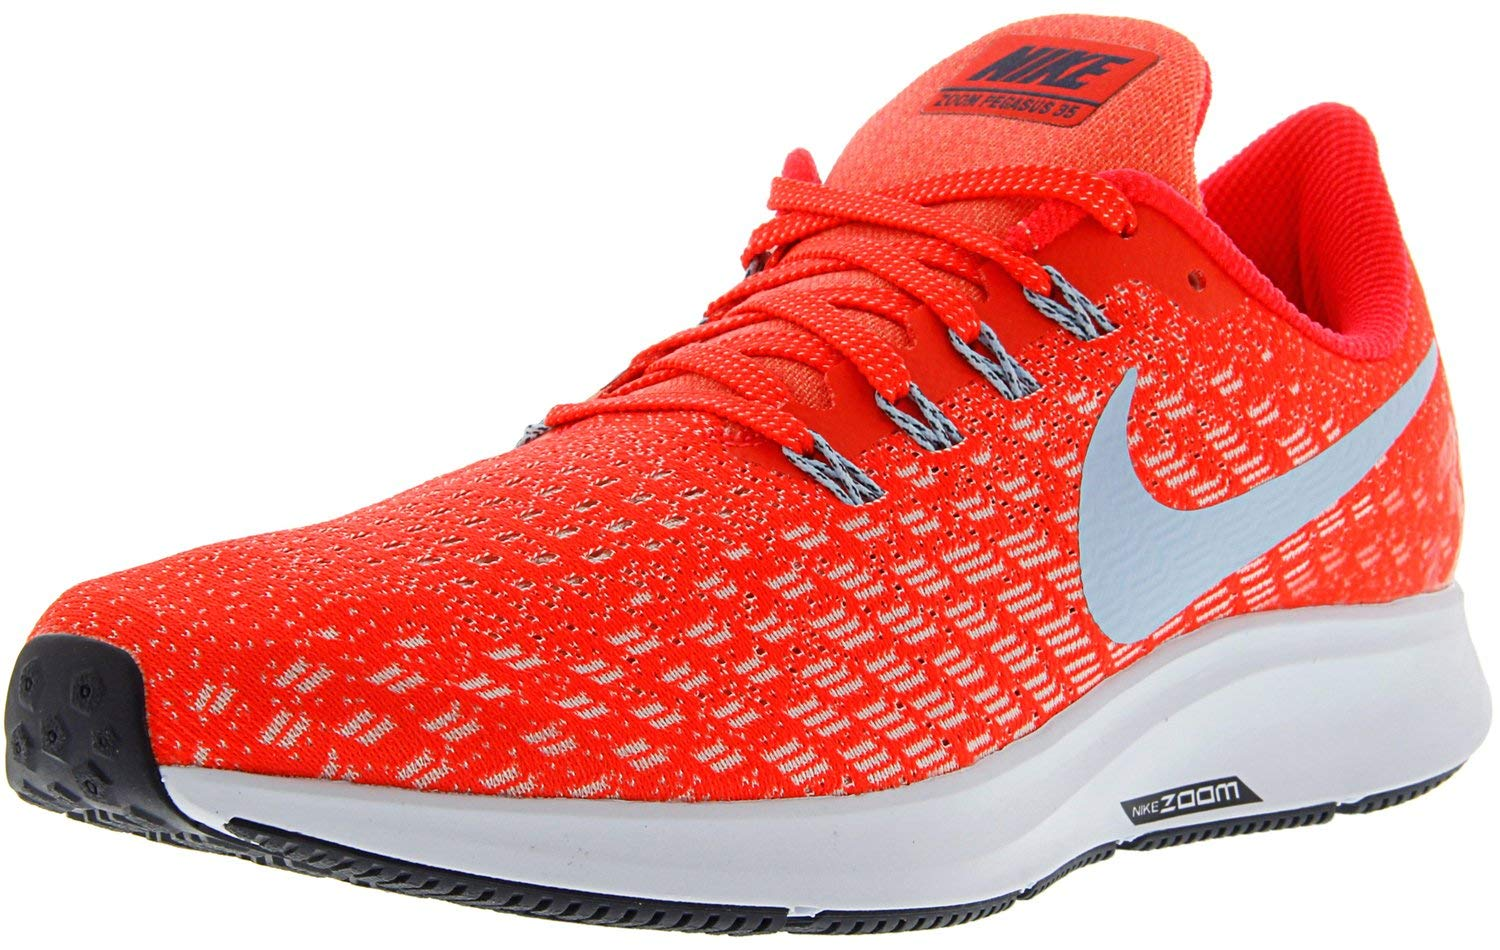 47c4d79199e Nike Men s Air Zoom Pegasus 35 Bright Crimson Ice Blue - Sail Ankle ...